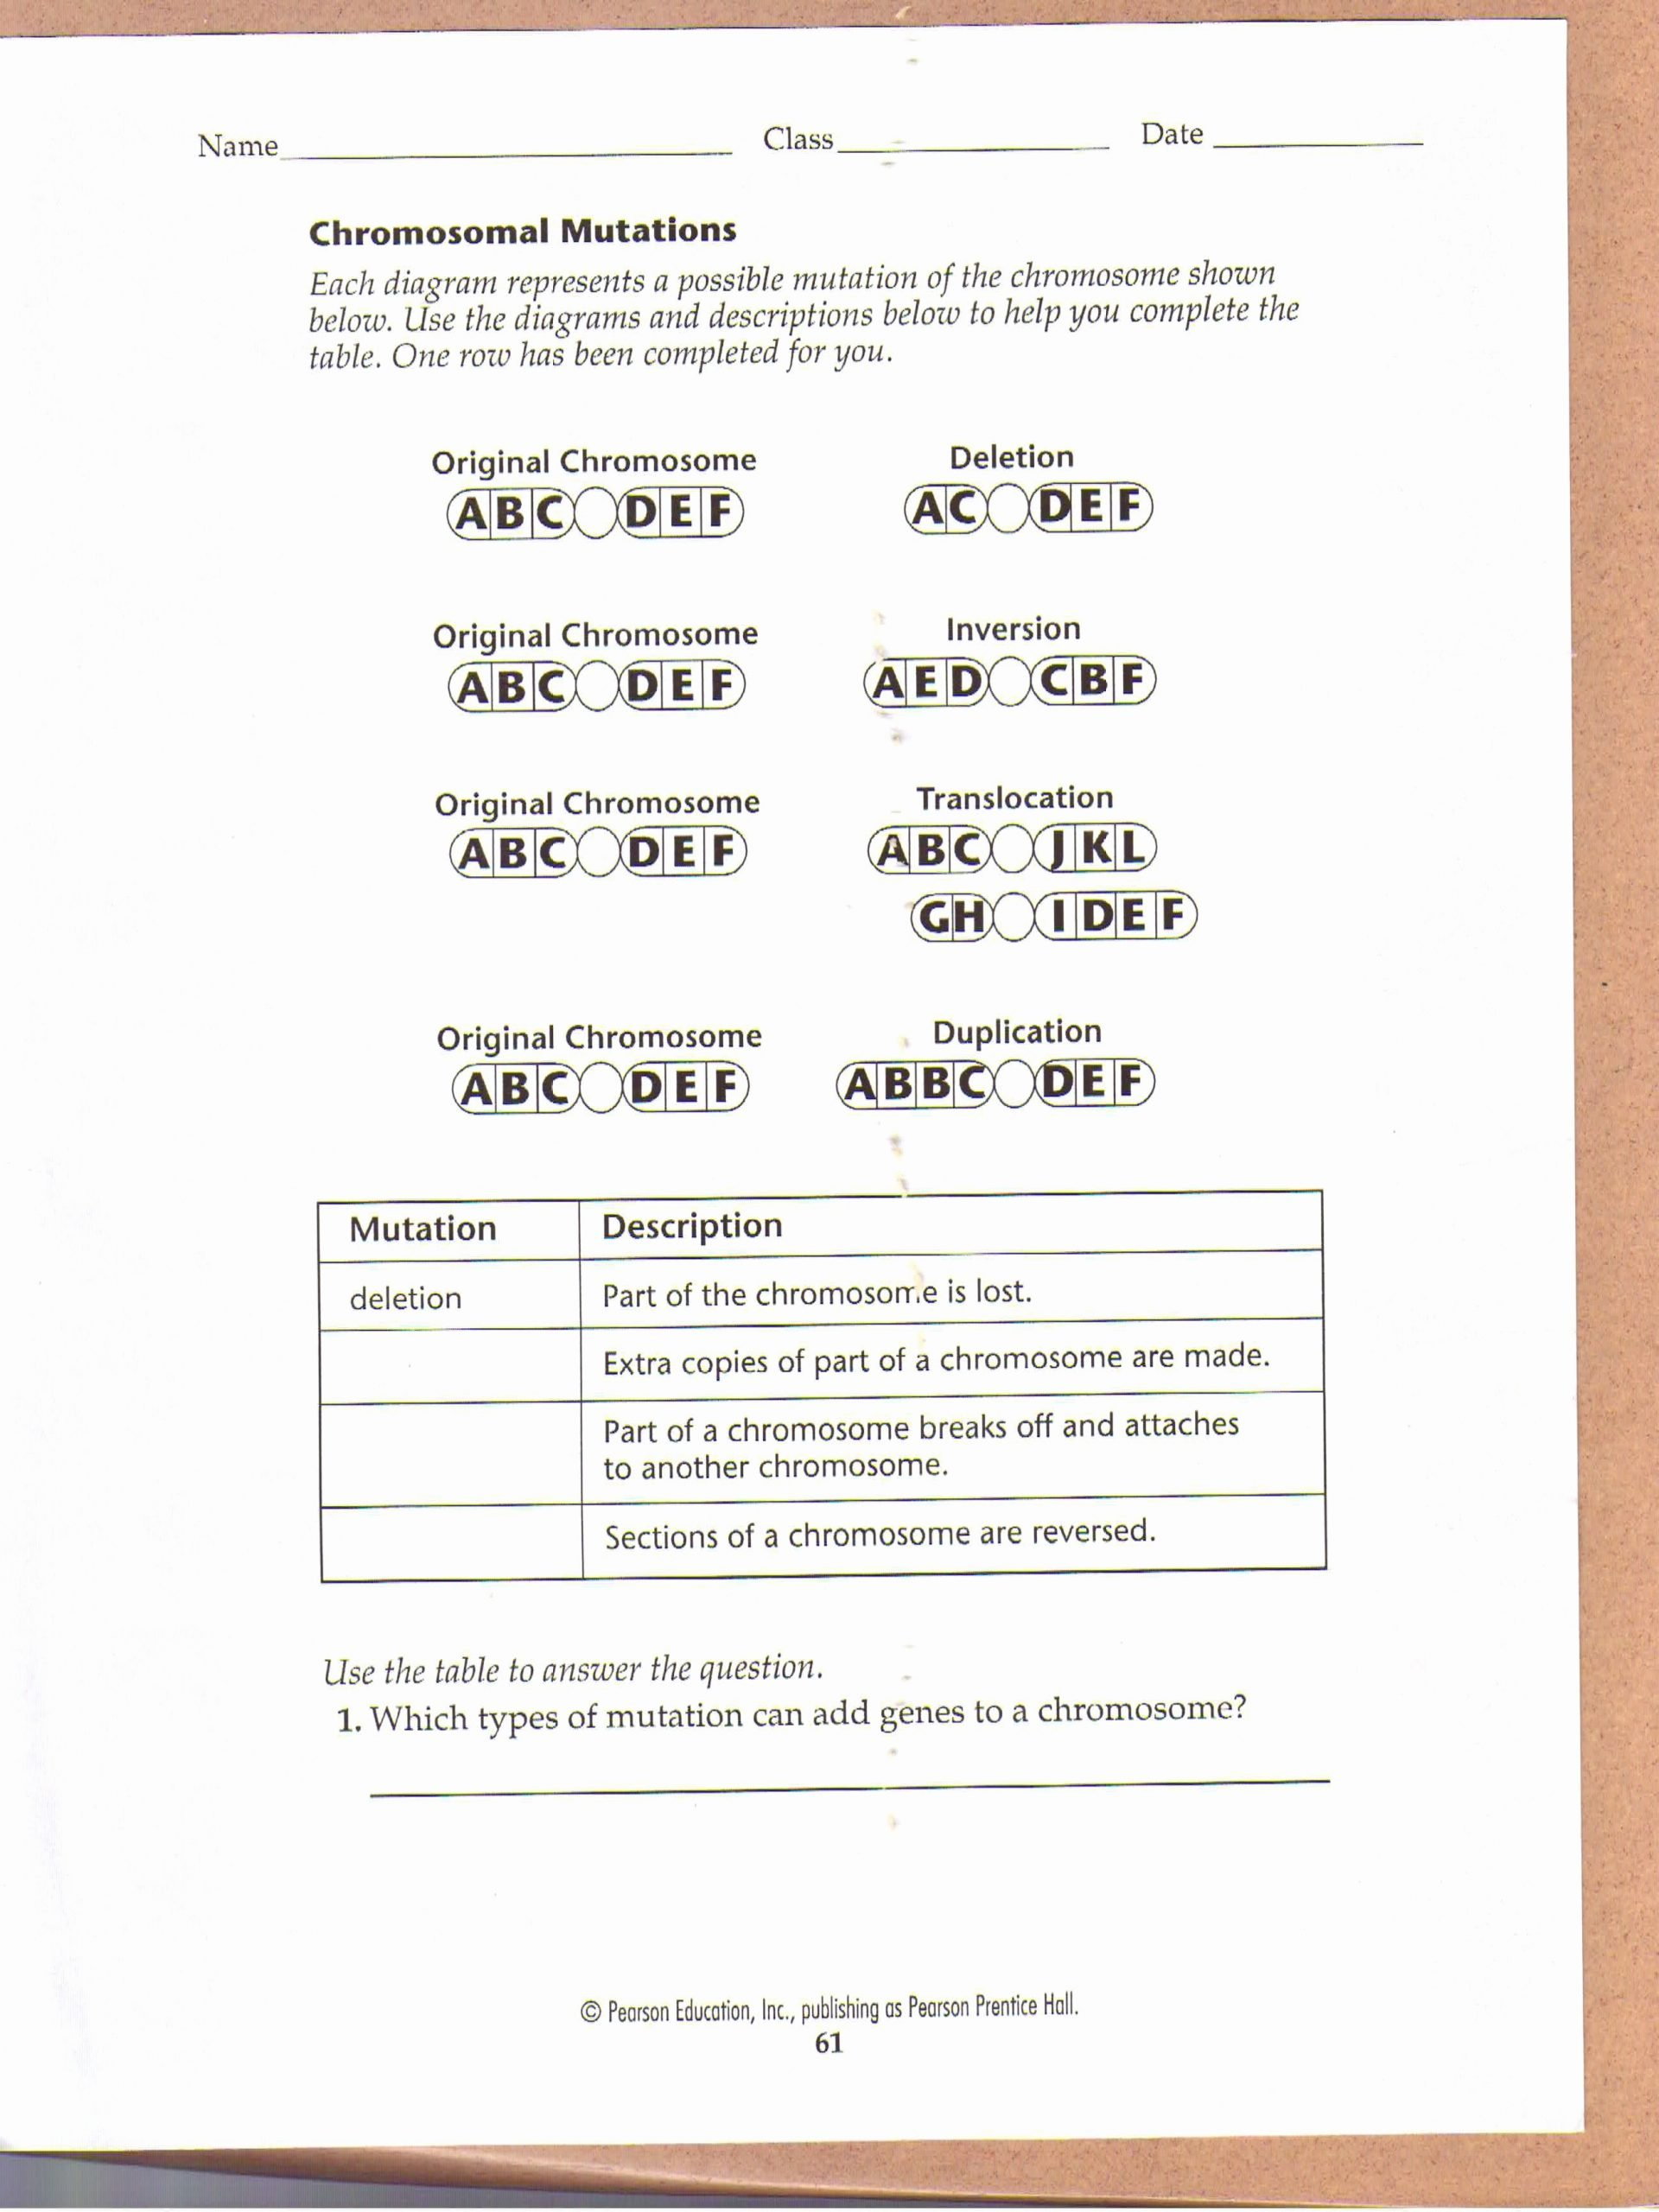 Gene and Chromosome Mutation Worksheet Inspirational Chromosomal Mutations Worksheet